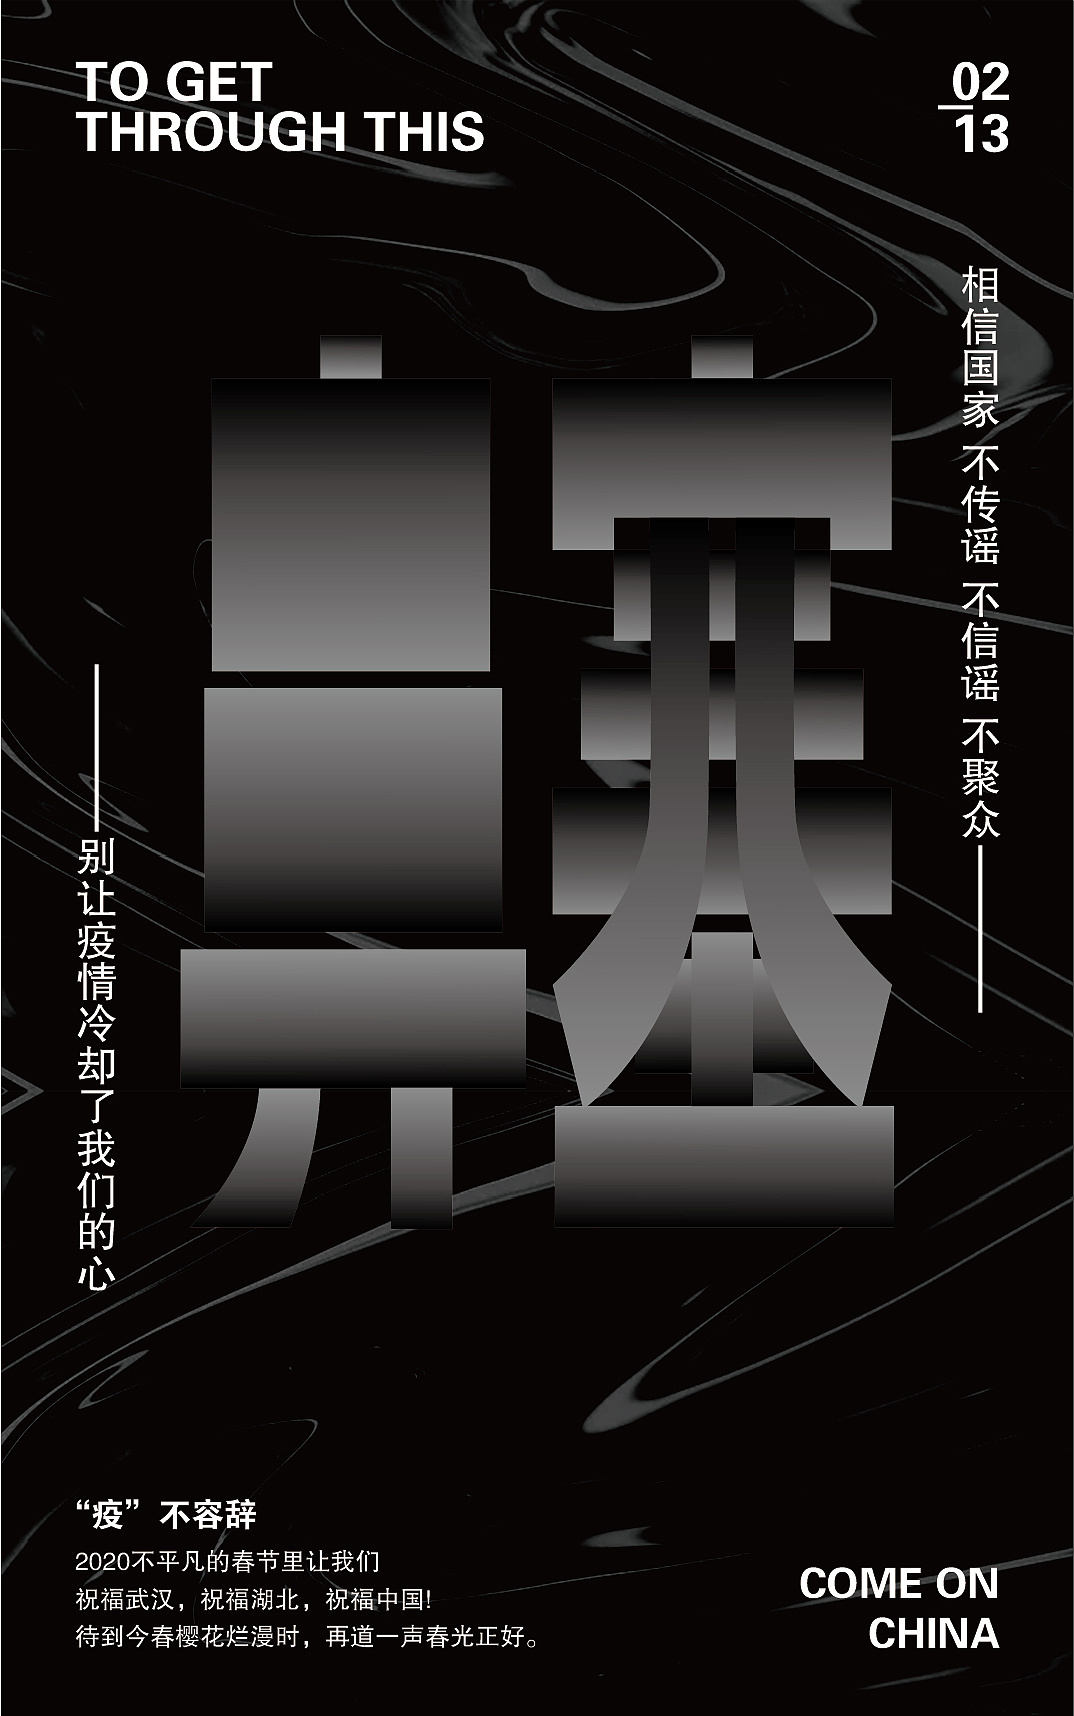 Chinese Creative Font Design-Font poster for 2020 epidemic symptoms